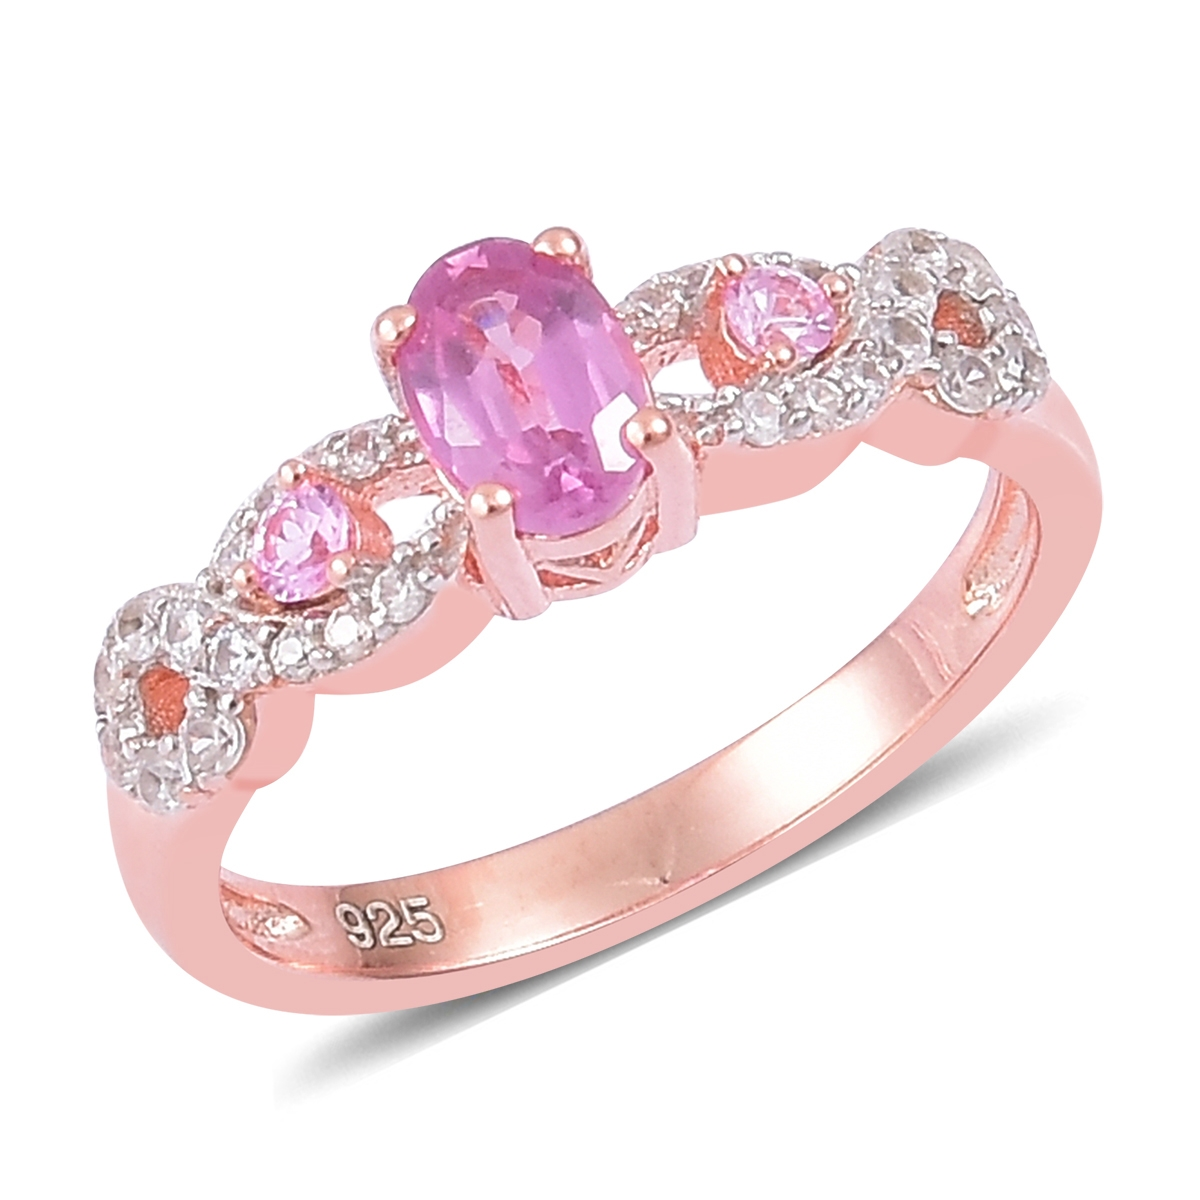 Pink Sapphire, White Zircon 14K Rose Gold Plated Silver Ring 0.82 ...